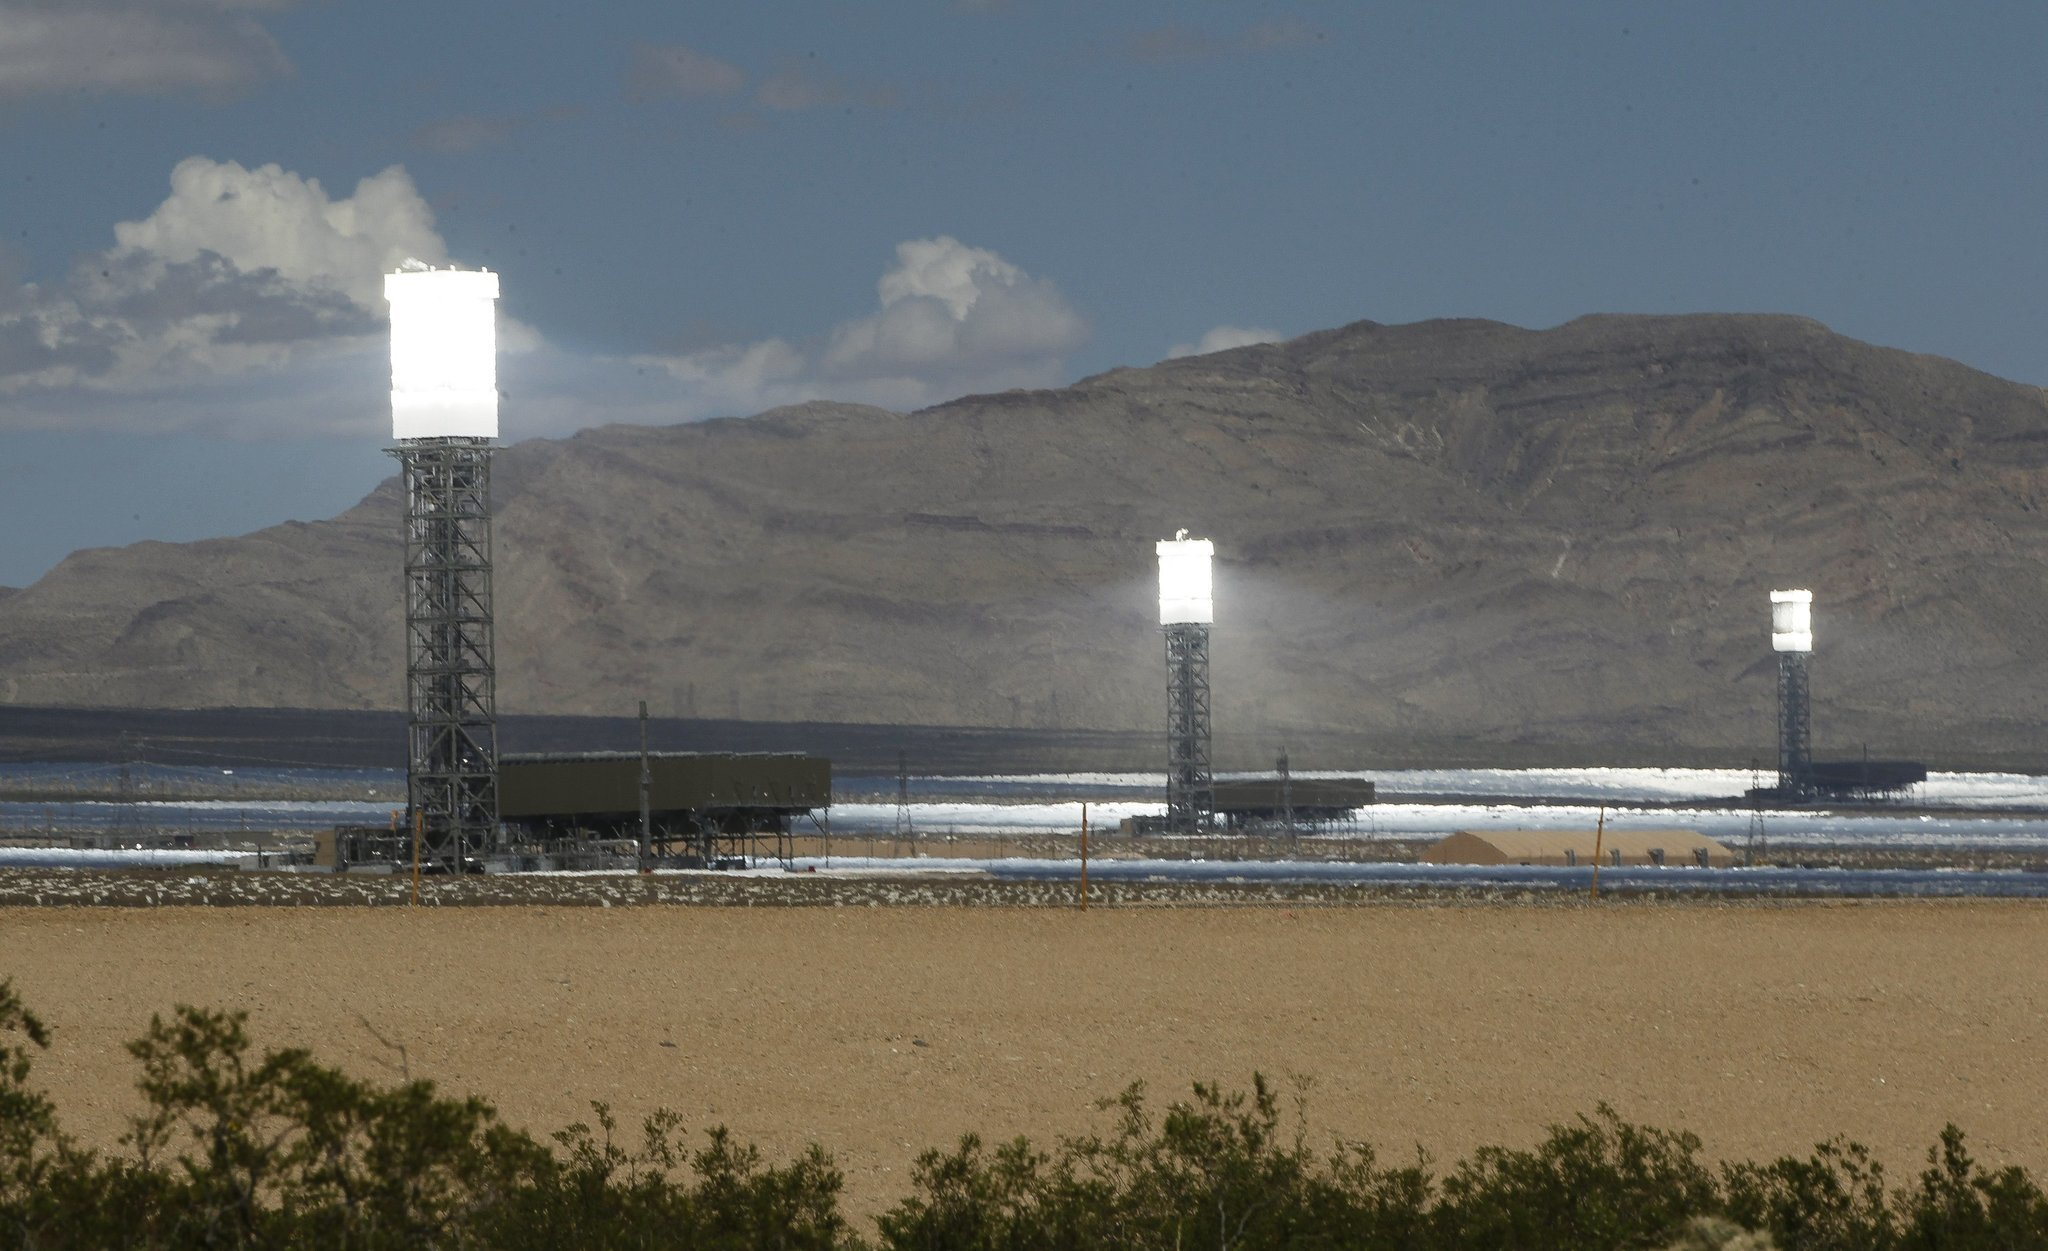 Giant solar plant said to fry flying birds The San Diego Union